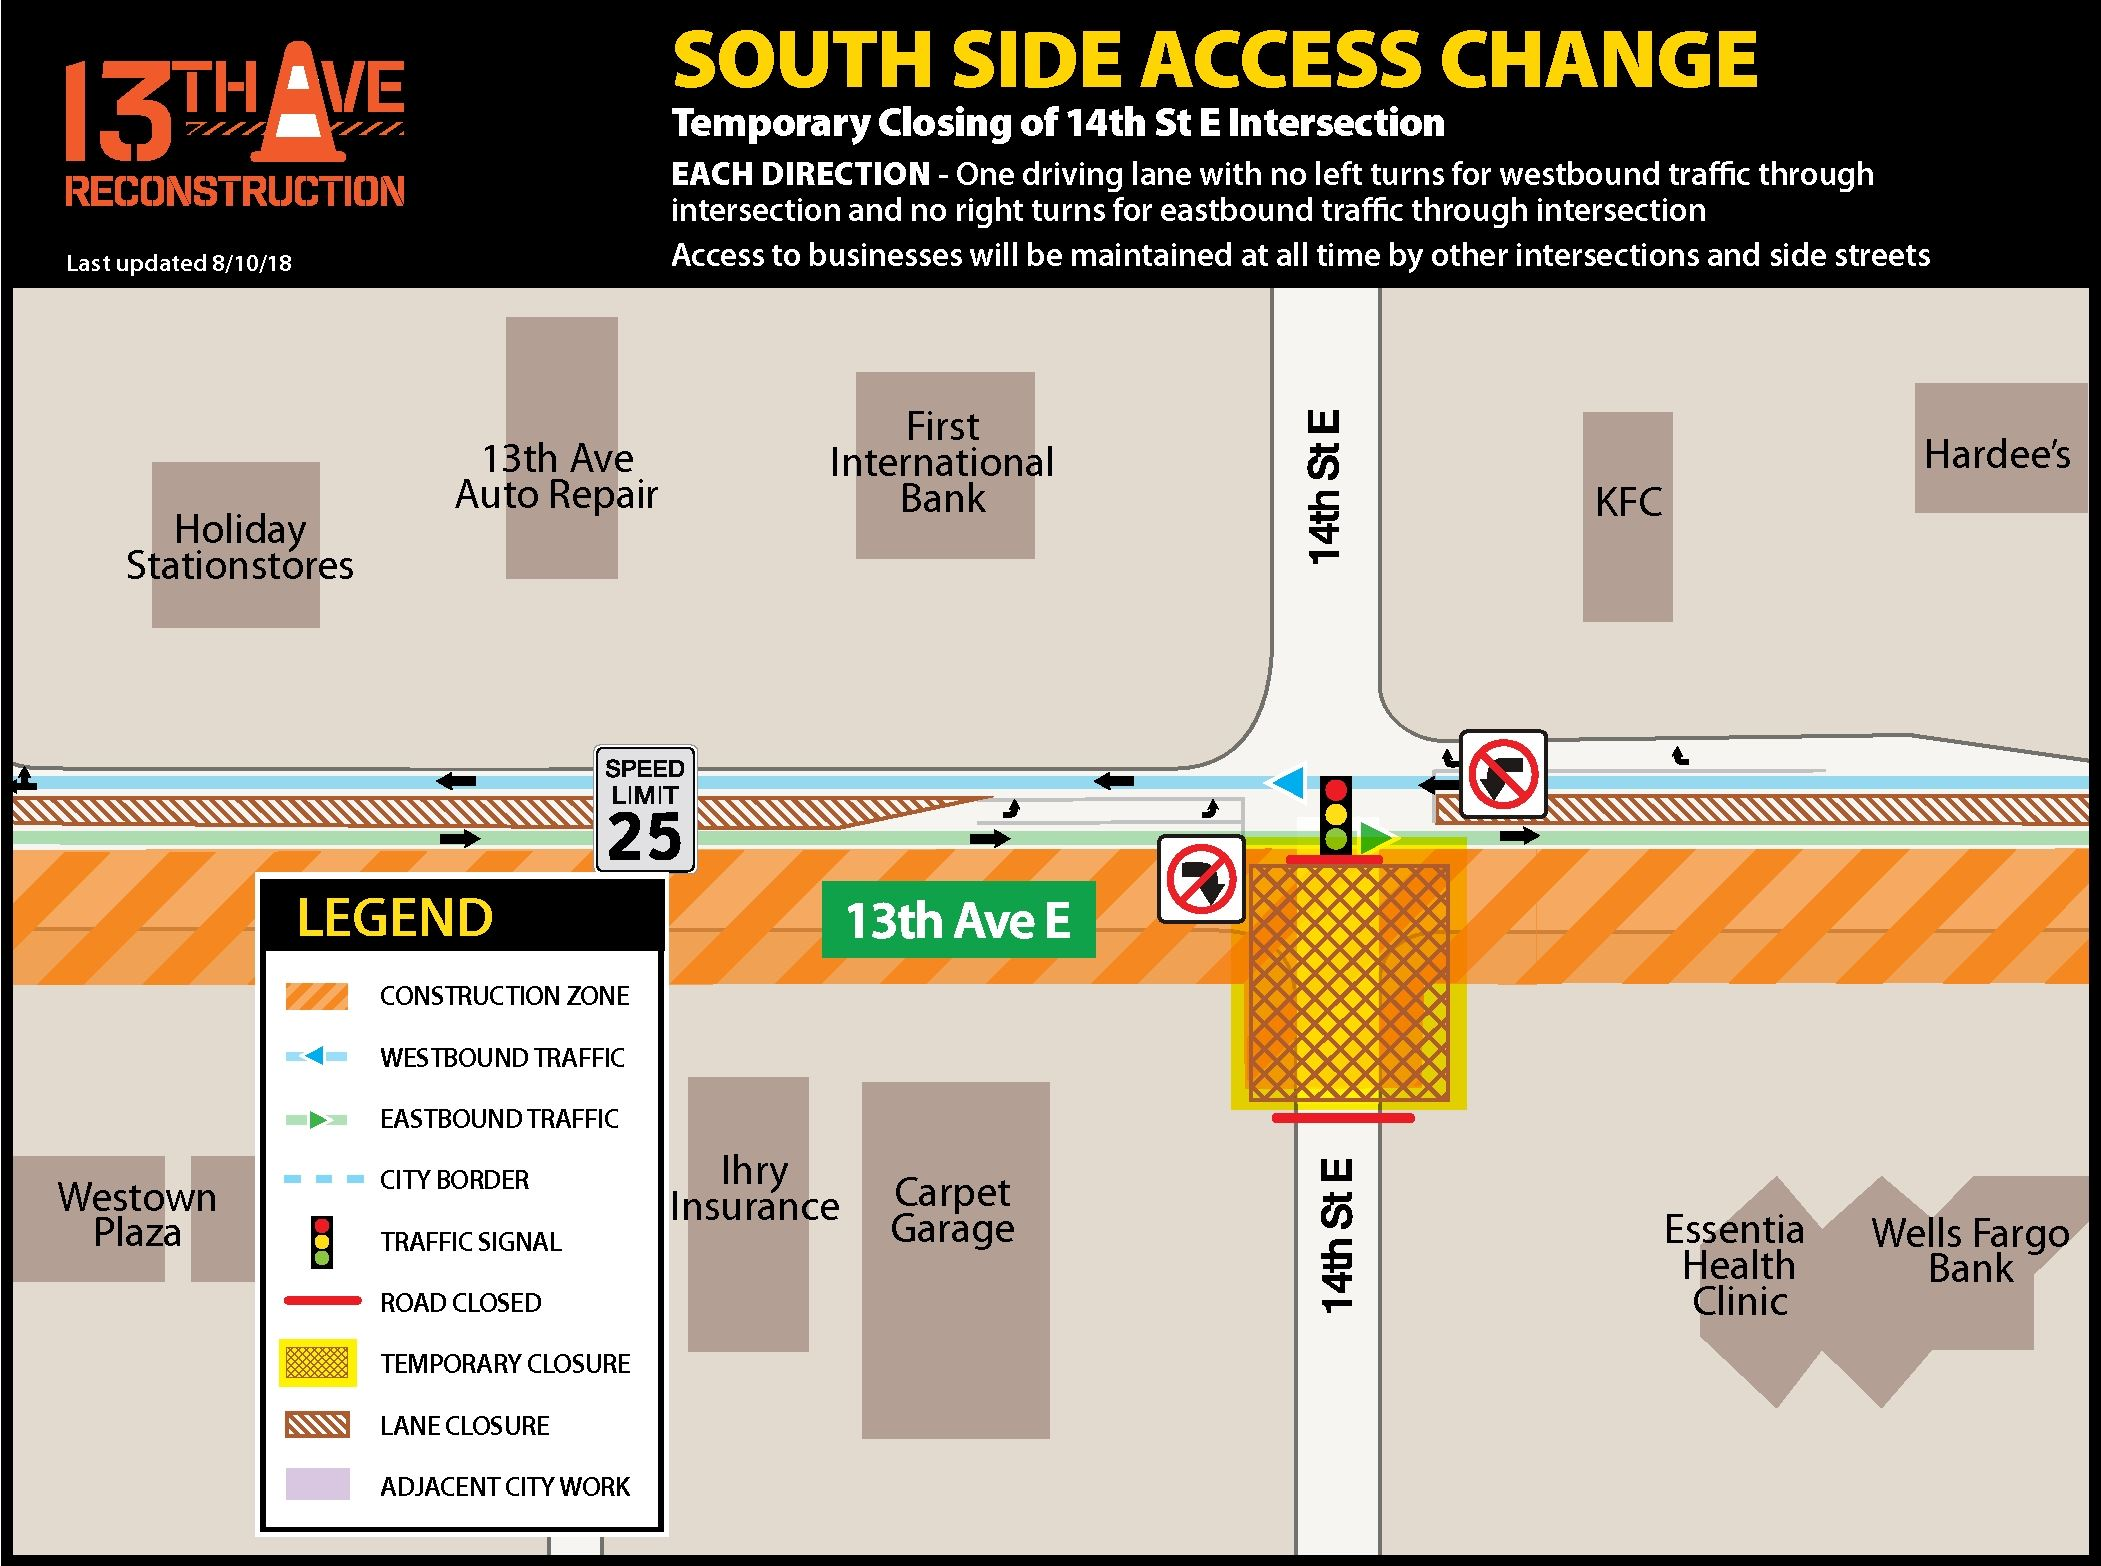 Southside access change at 14th St E.